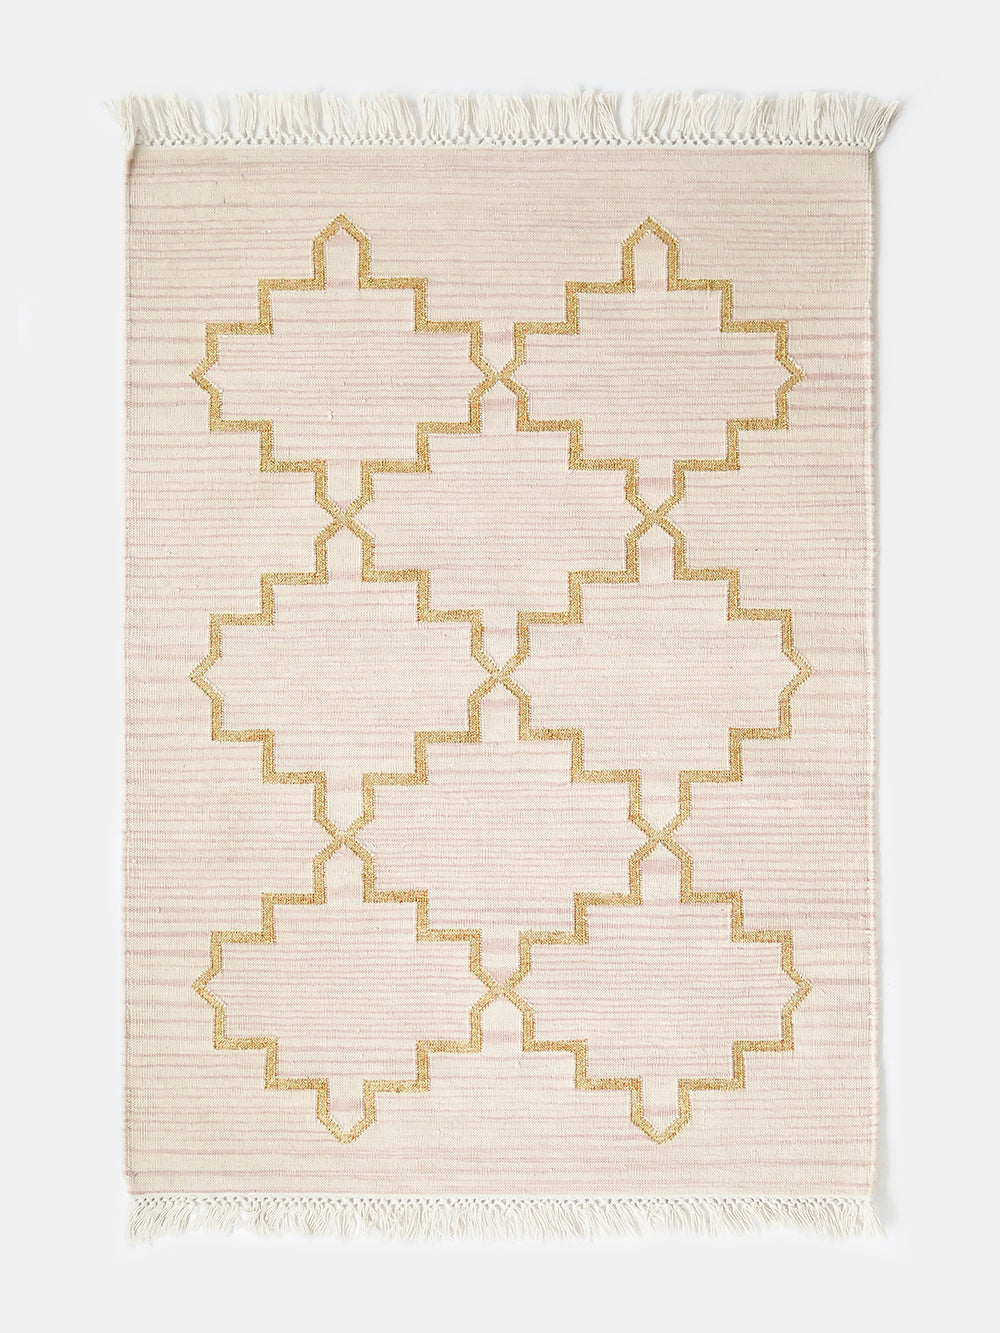 zanjeer rug in ecru + gold